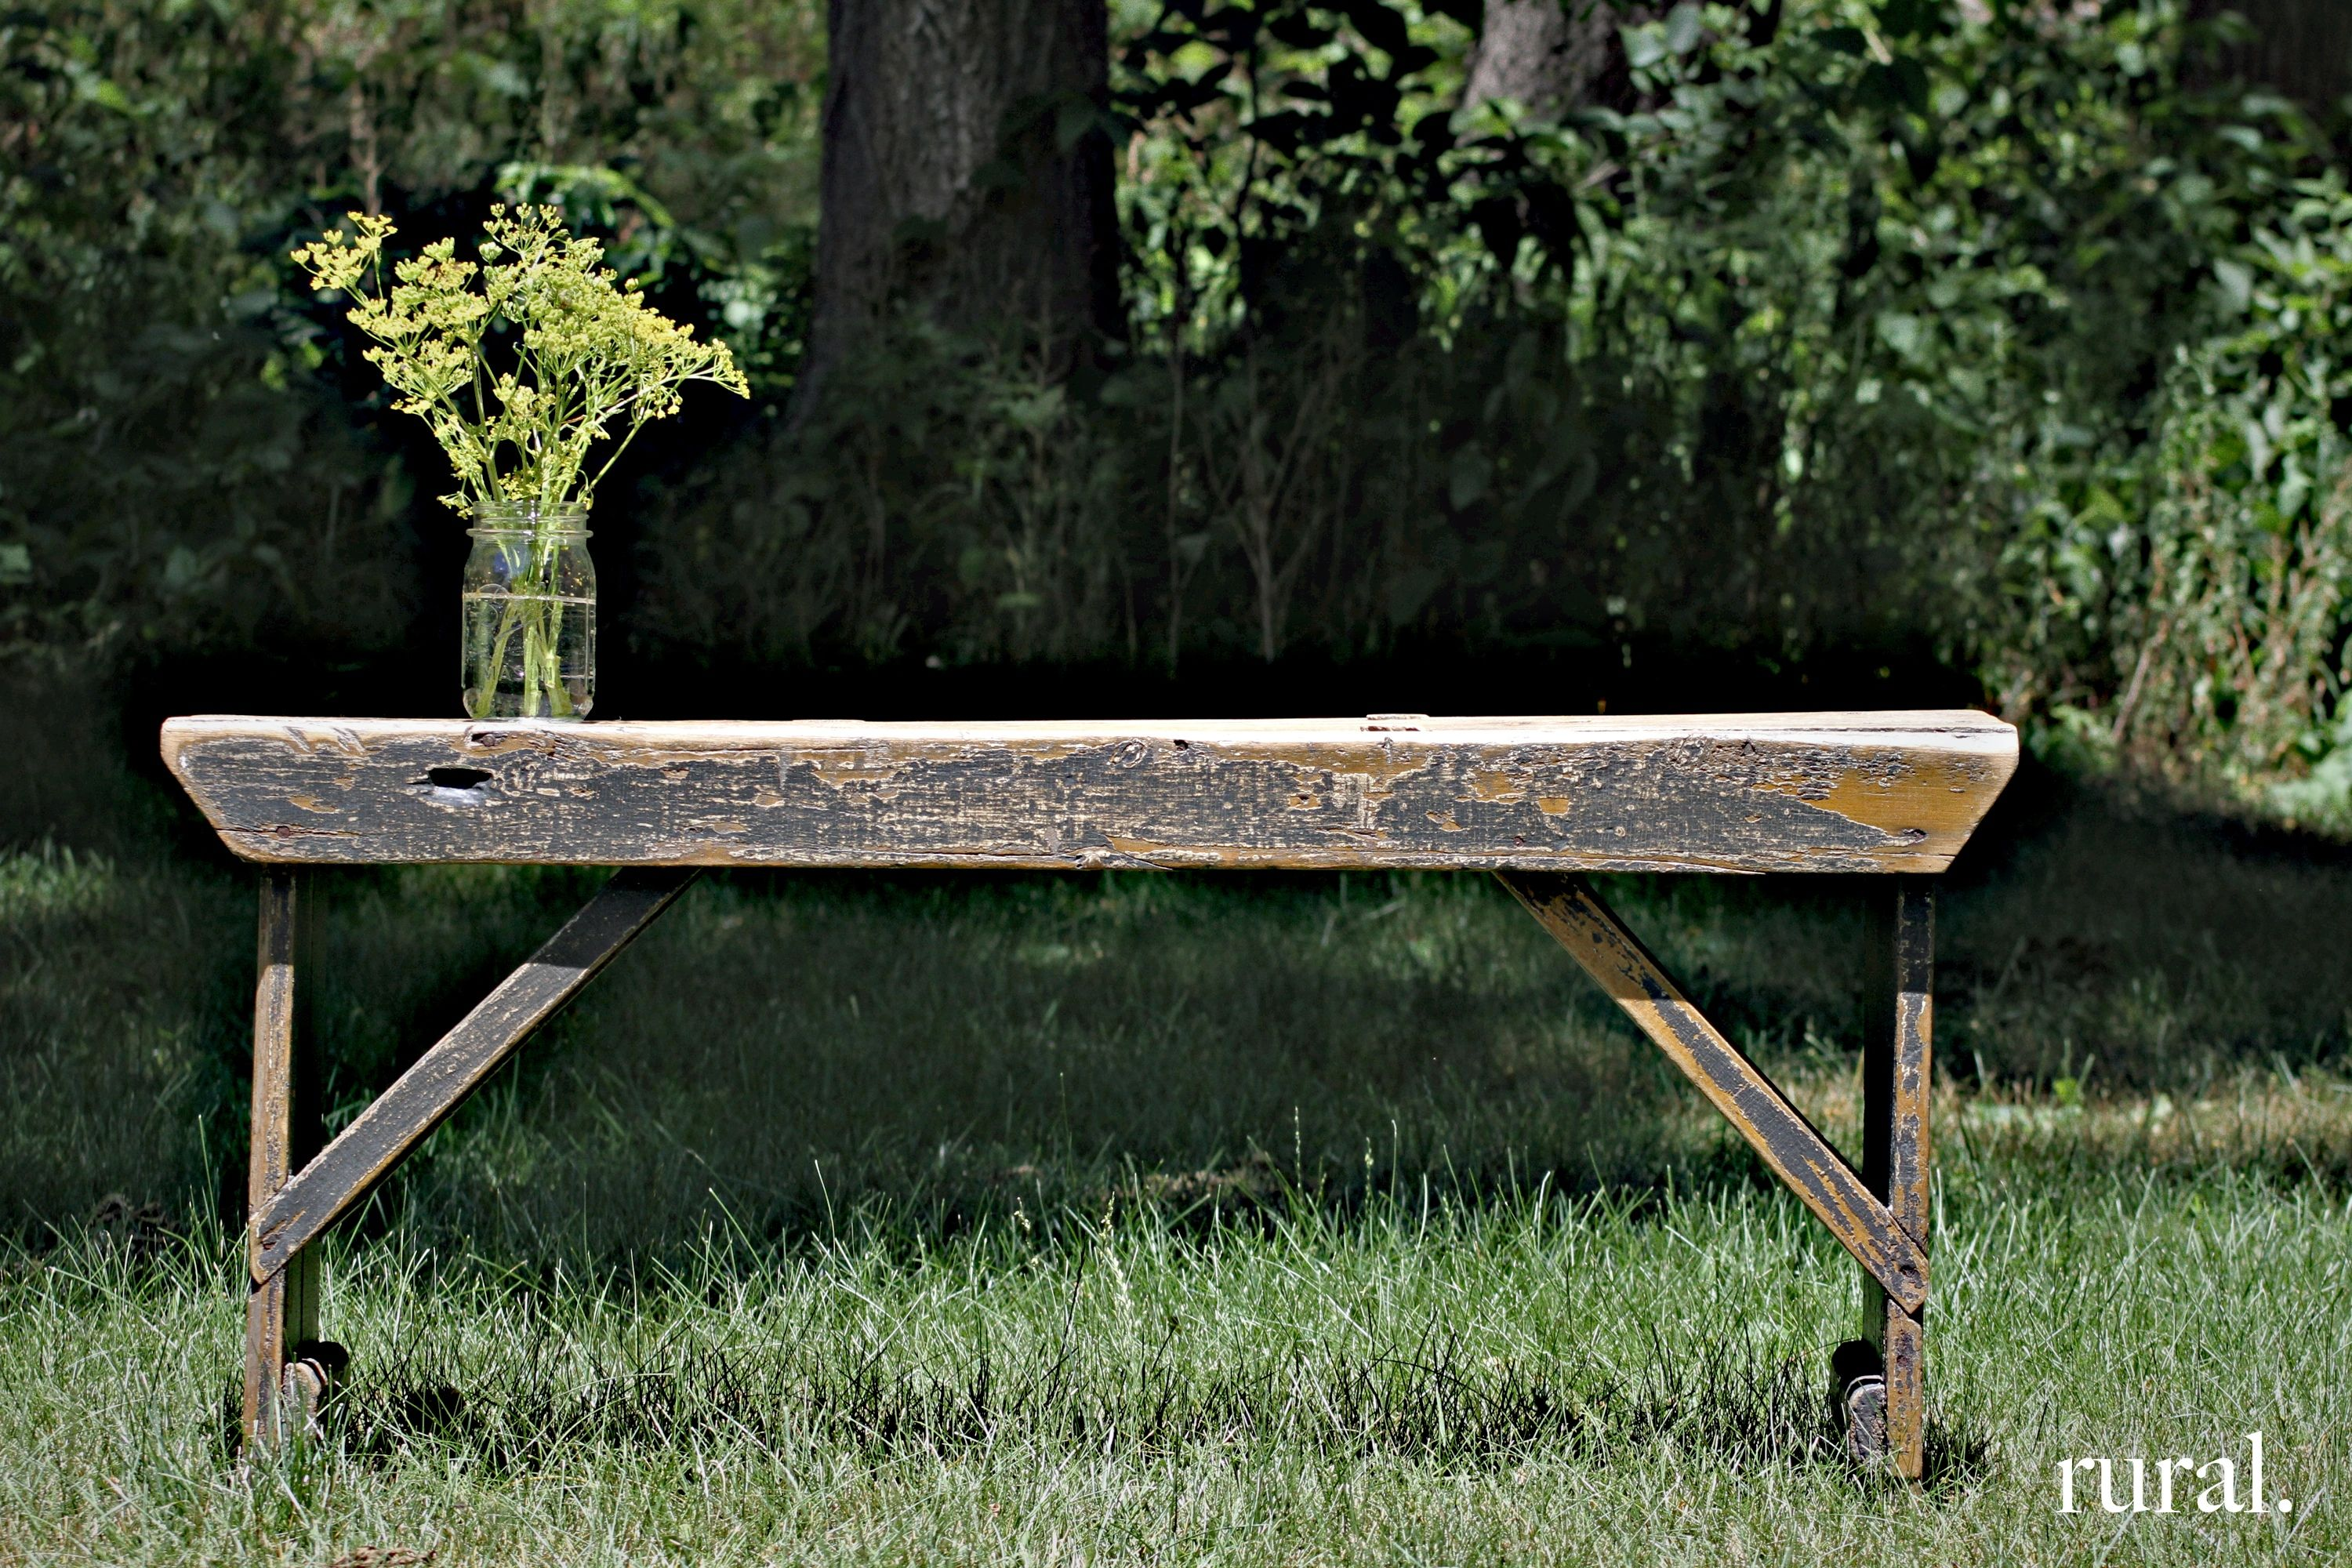 Groovy Primitive Bench Sit With Me In The Garden Old Benches Gmtry Best Dining Table And Chair Ideas Images Gmtryco